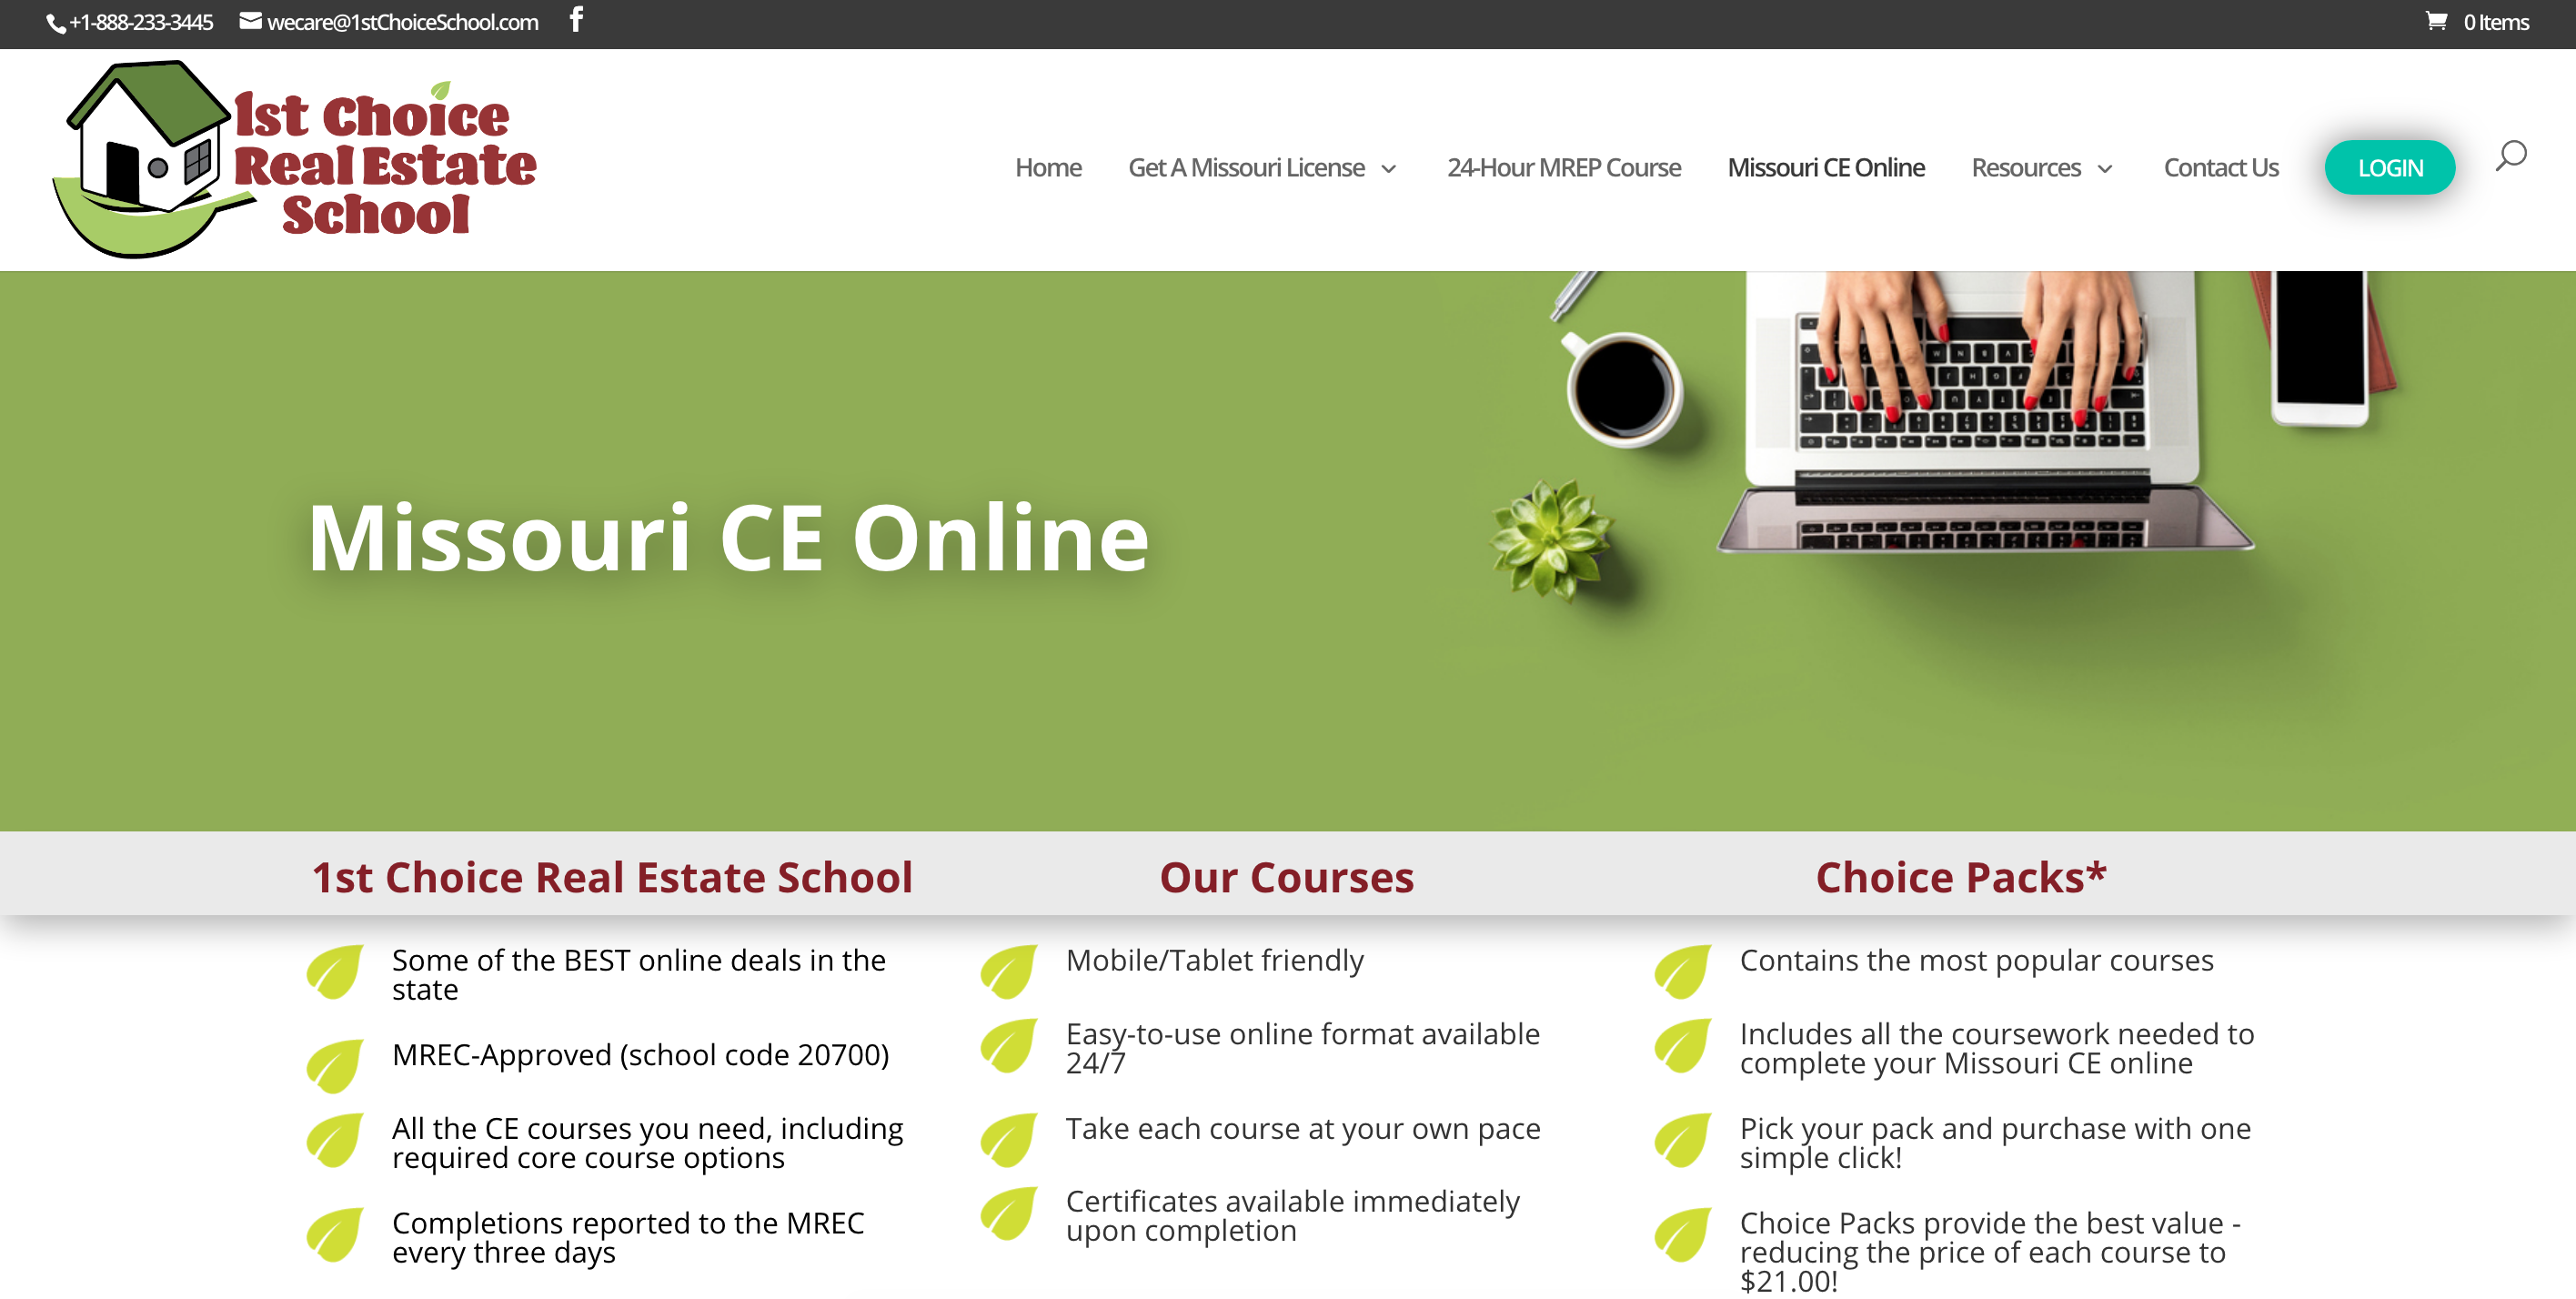 1st Choice Real Estate School website sell realtor broker online courses with LMS e-learning eLearning platform